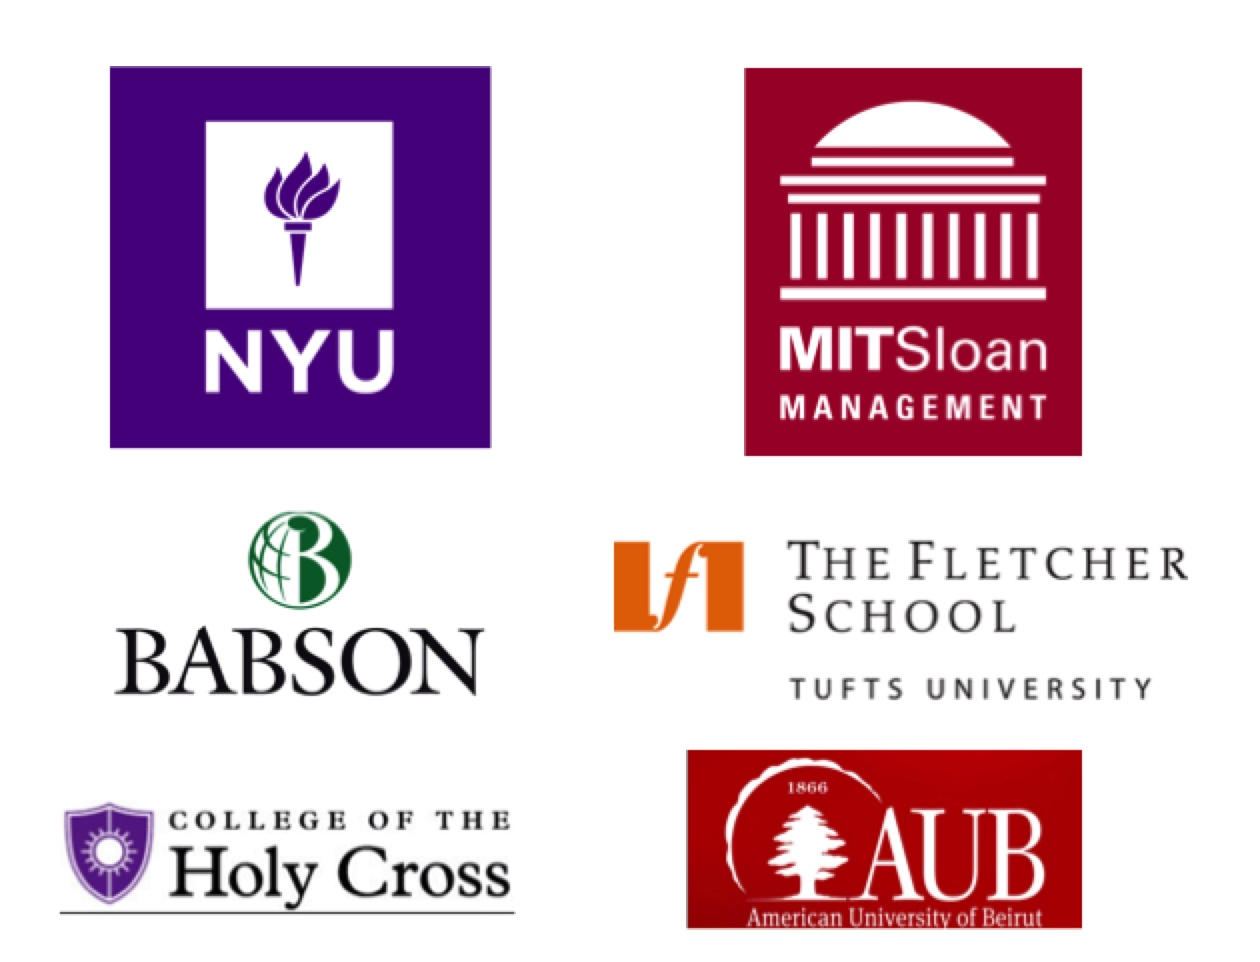 - ...and here are some of the colleges and universities that invited us to speak or participate in panels: